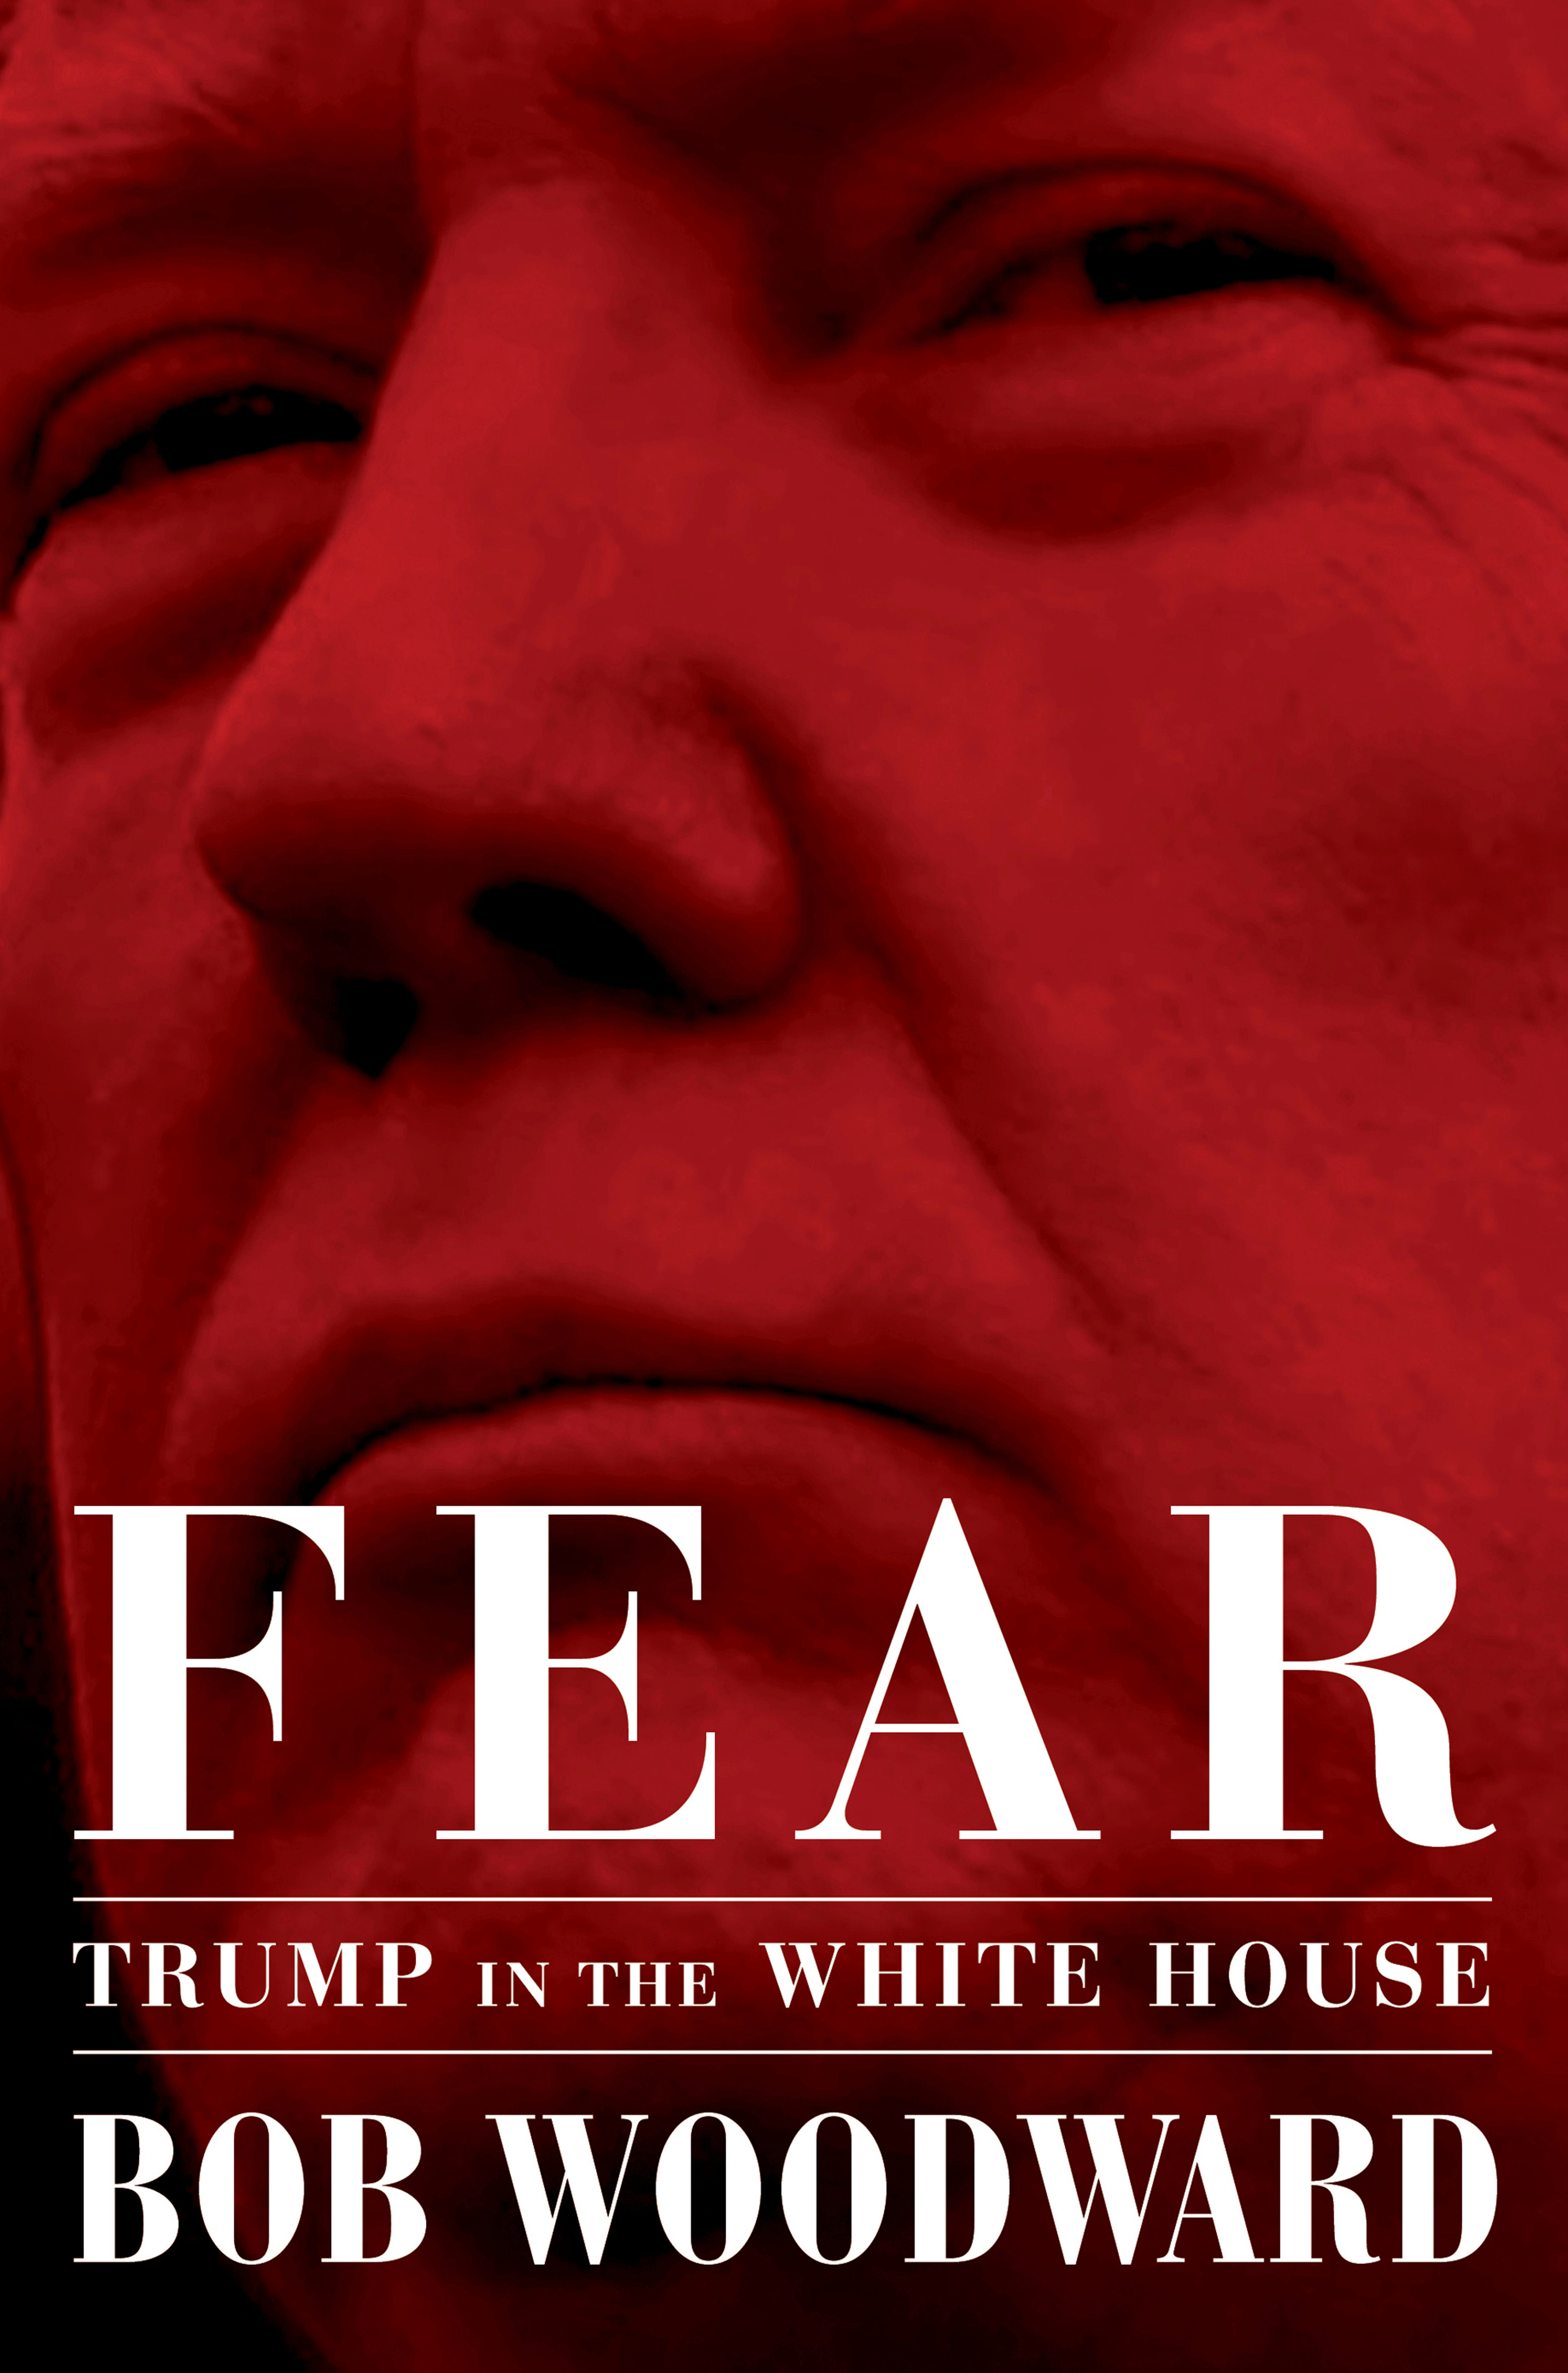 Woodward book 'Fear' reflects chaos in Trump White House; Kelly called president an 'idiot'